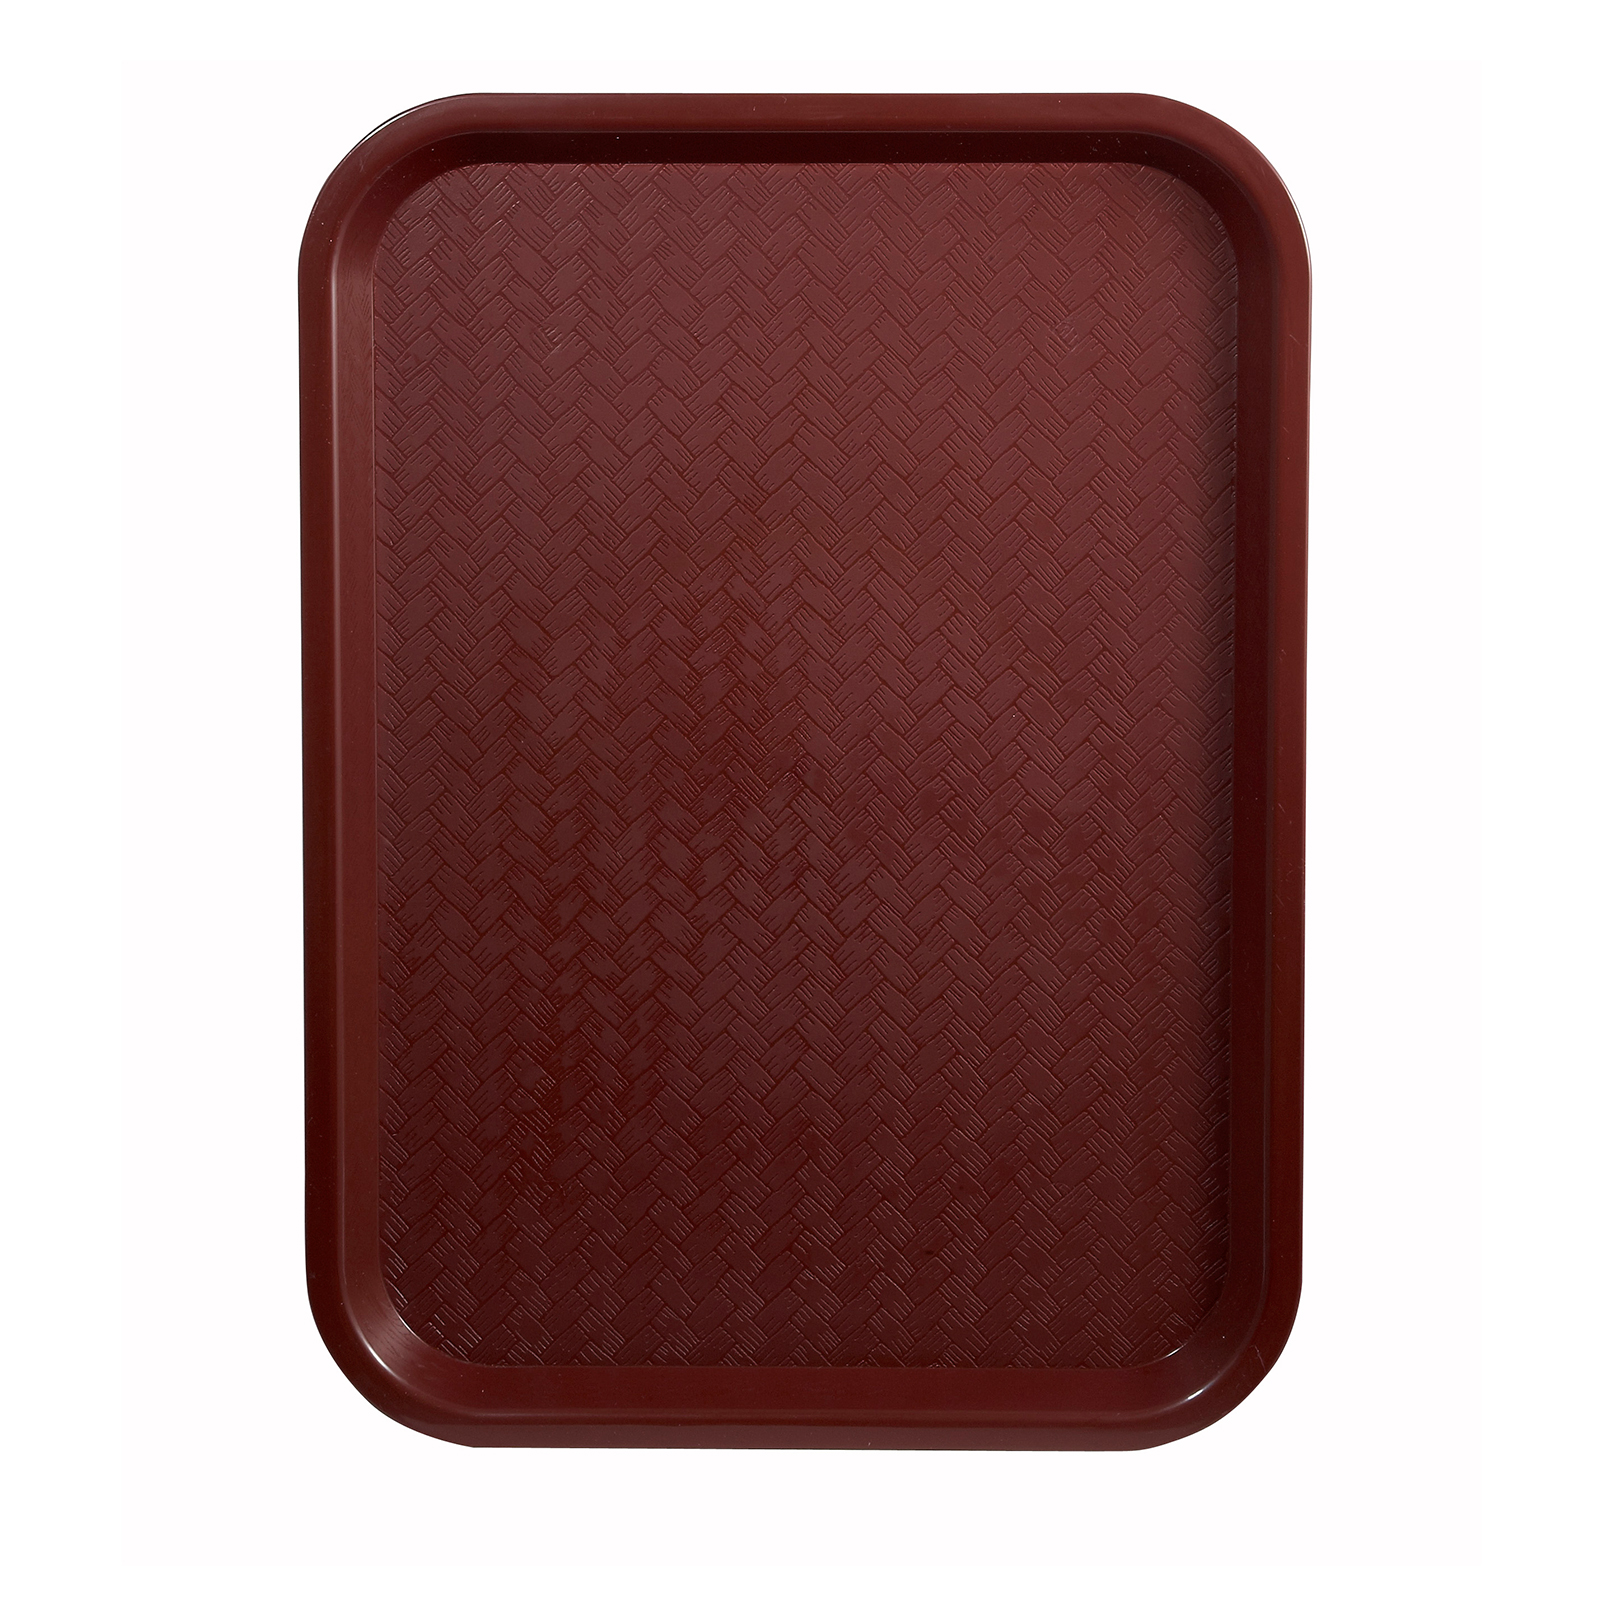 Winco FFT-1216U tray, fast food